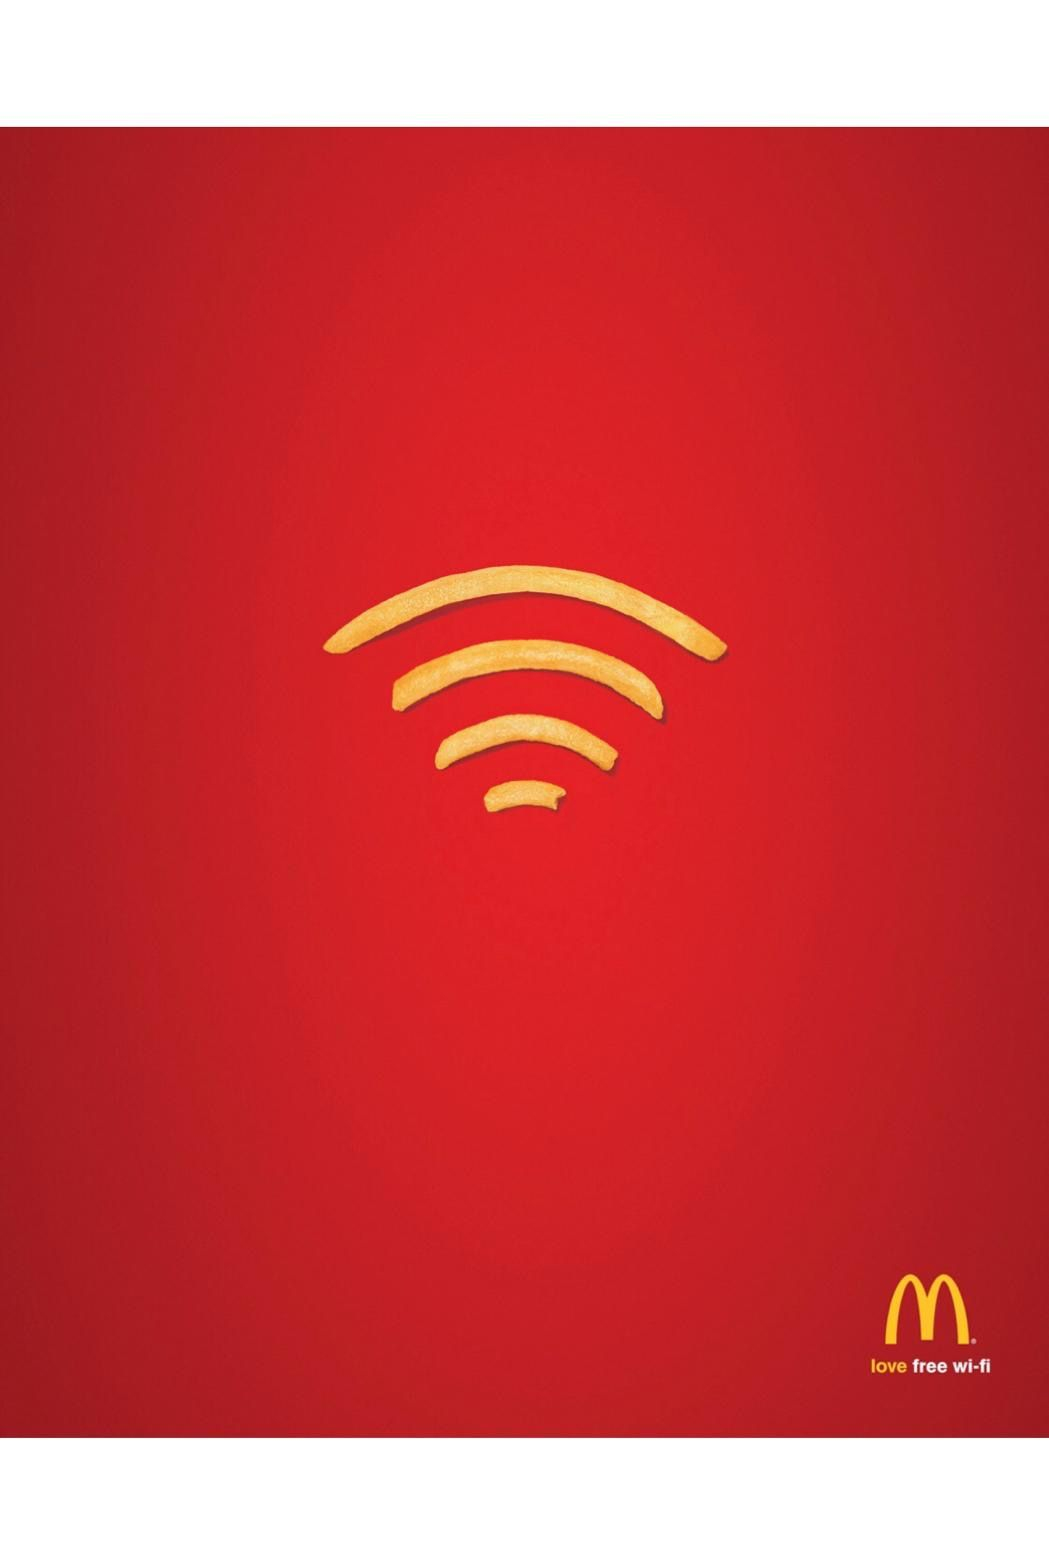 Mcdonald announcing free wifi in 2020 with images free